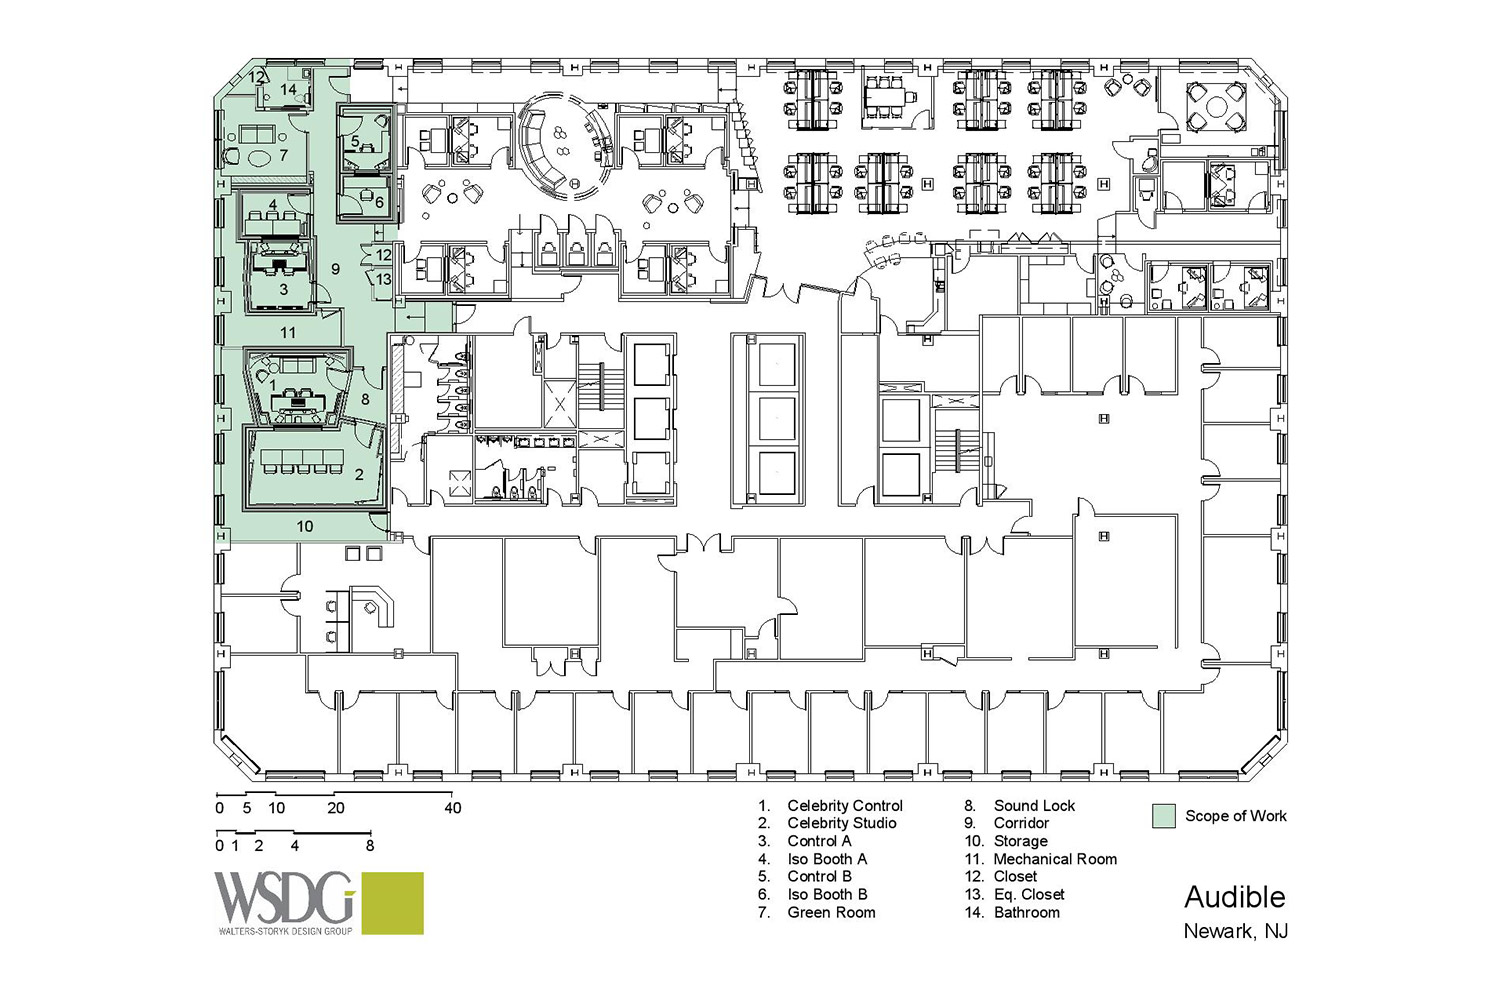 Audible is the world's largest producer/distributor of downloadable audiobooks and other spoken-word entertainment. WSDG was commissioned to design their new state-of-the-art recording studio complex. Presentation Drawing 2